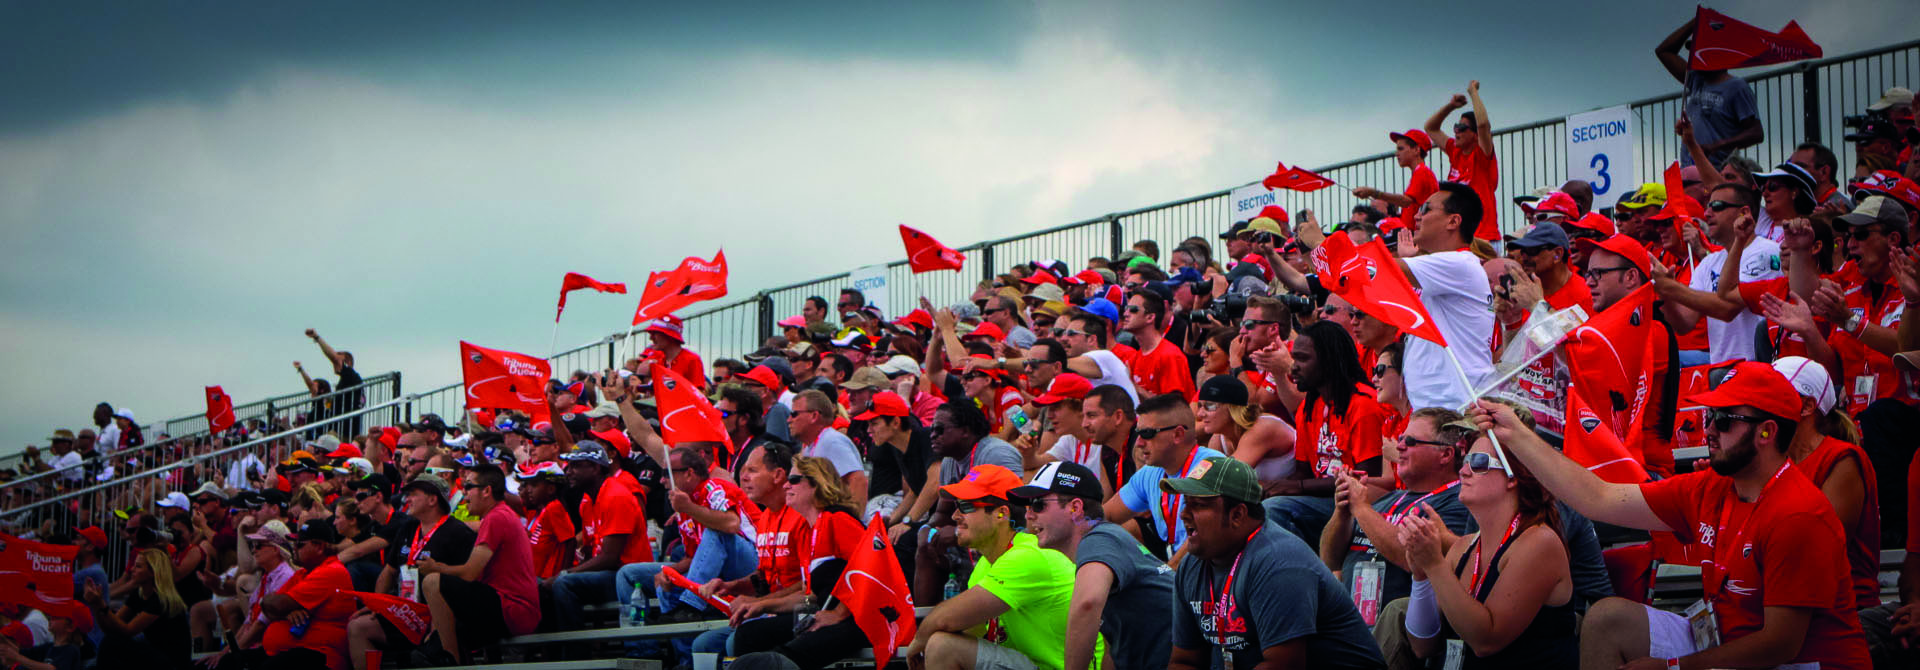 PAG-28-Ducati-Grandstands-Indianapolis-2014